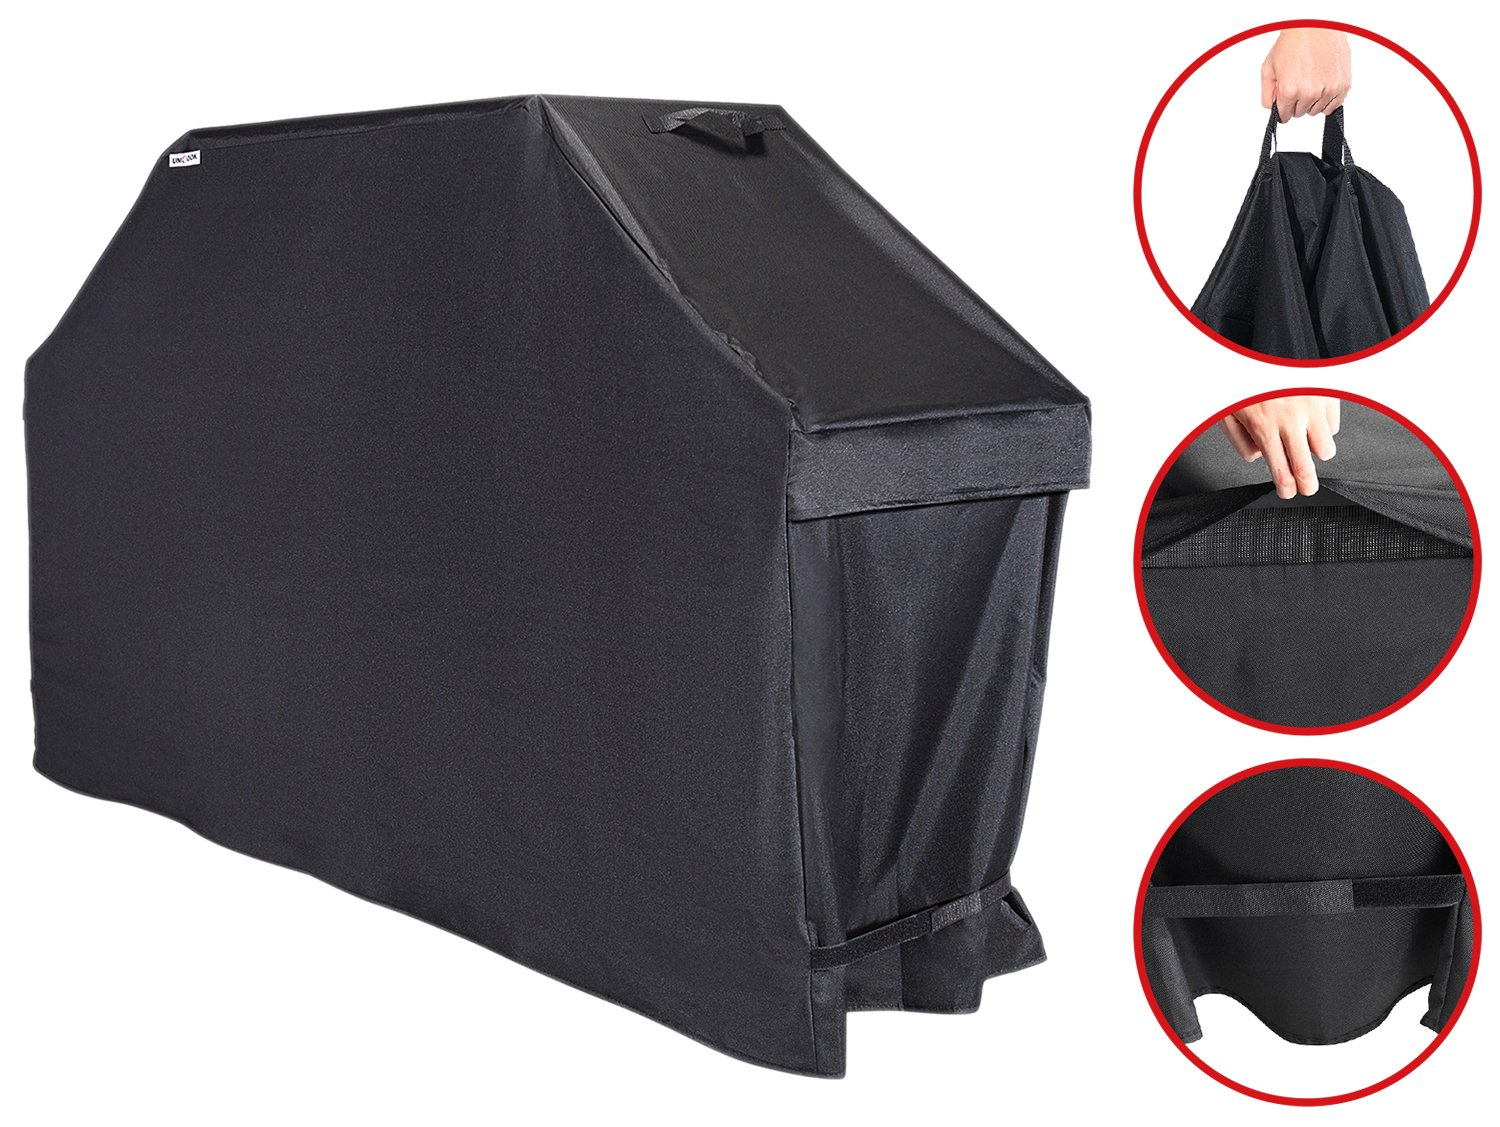 "Unicook Heavy Duty Universal Barbecue Grill Cover, 55-inch, Color Fading Resistant, UV Resistant, Easy Lifting Handles, Helpful Air Vents, Waterproof, All Weather Protection, 55""W x 21""D x 38""H"